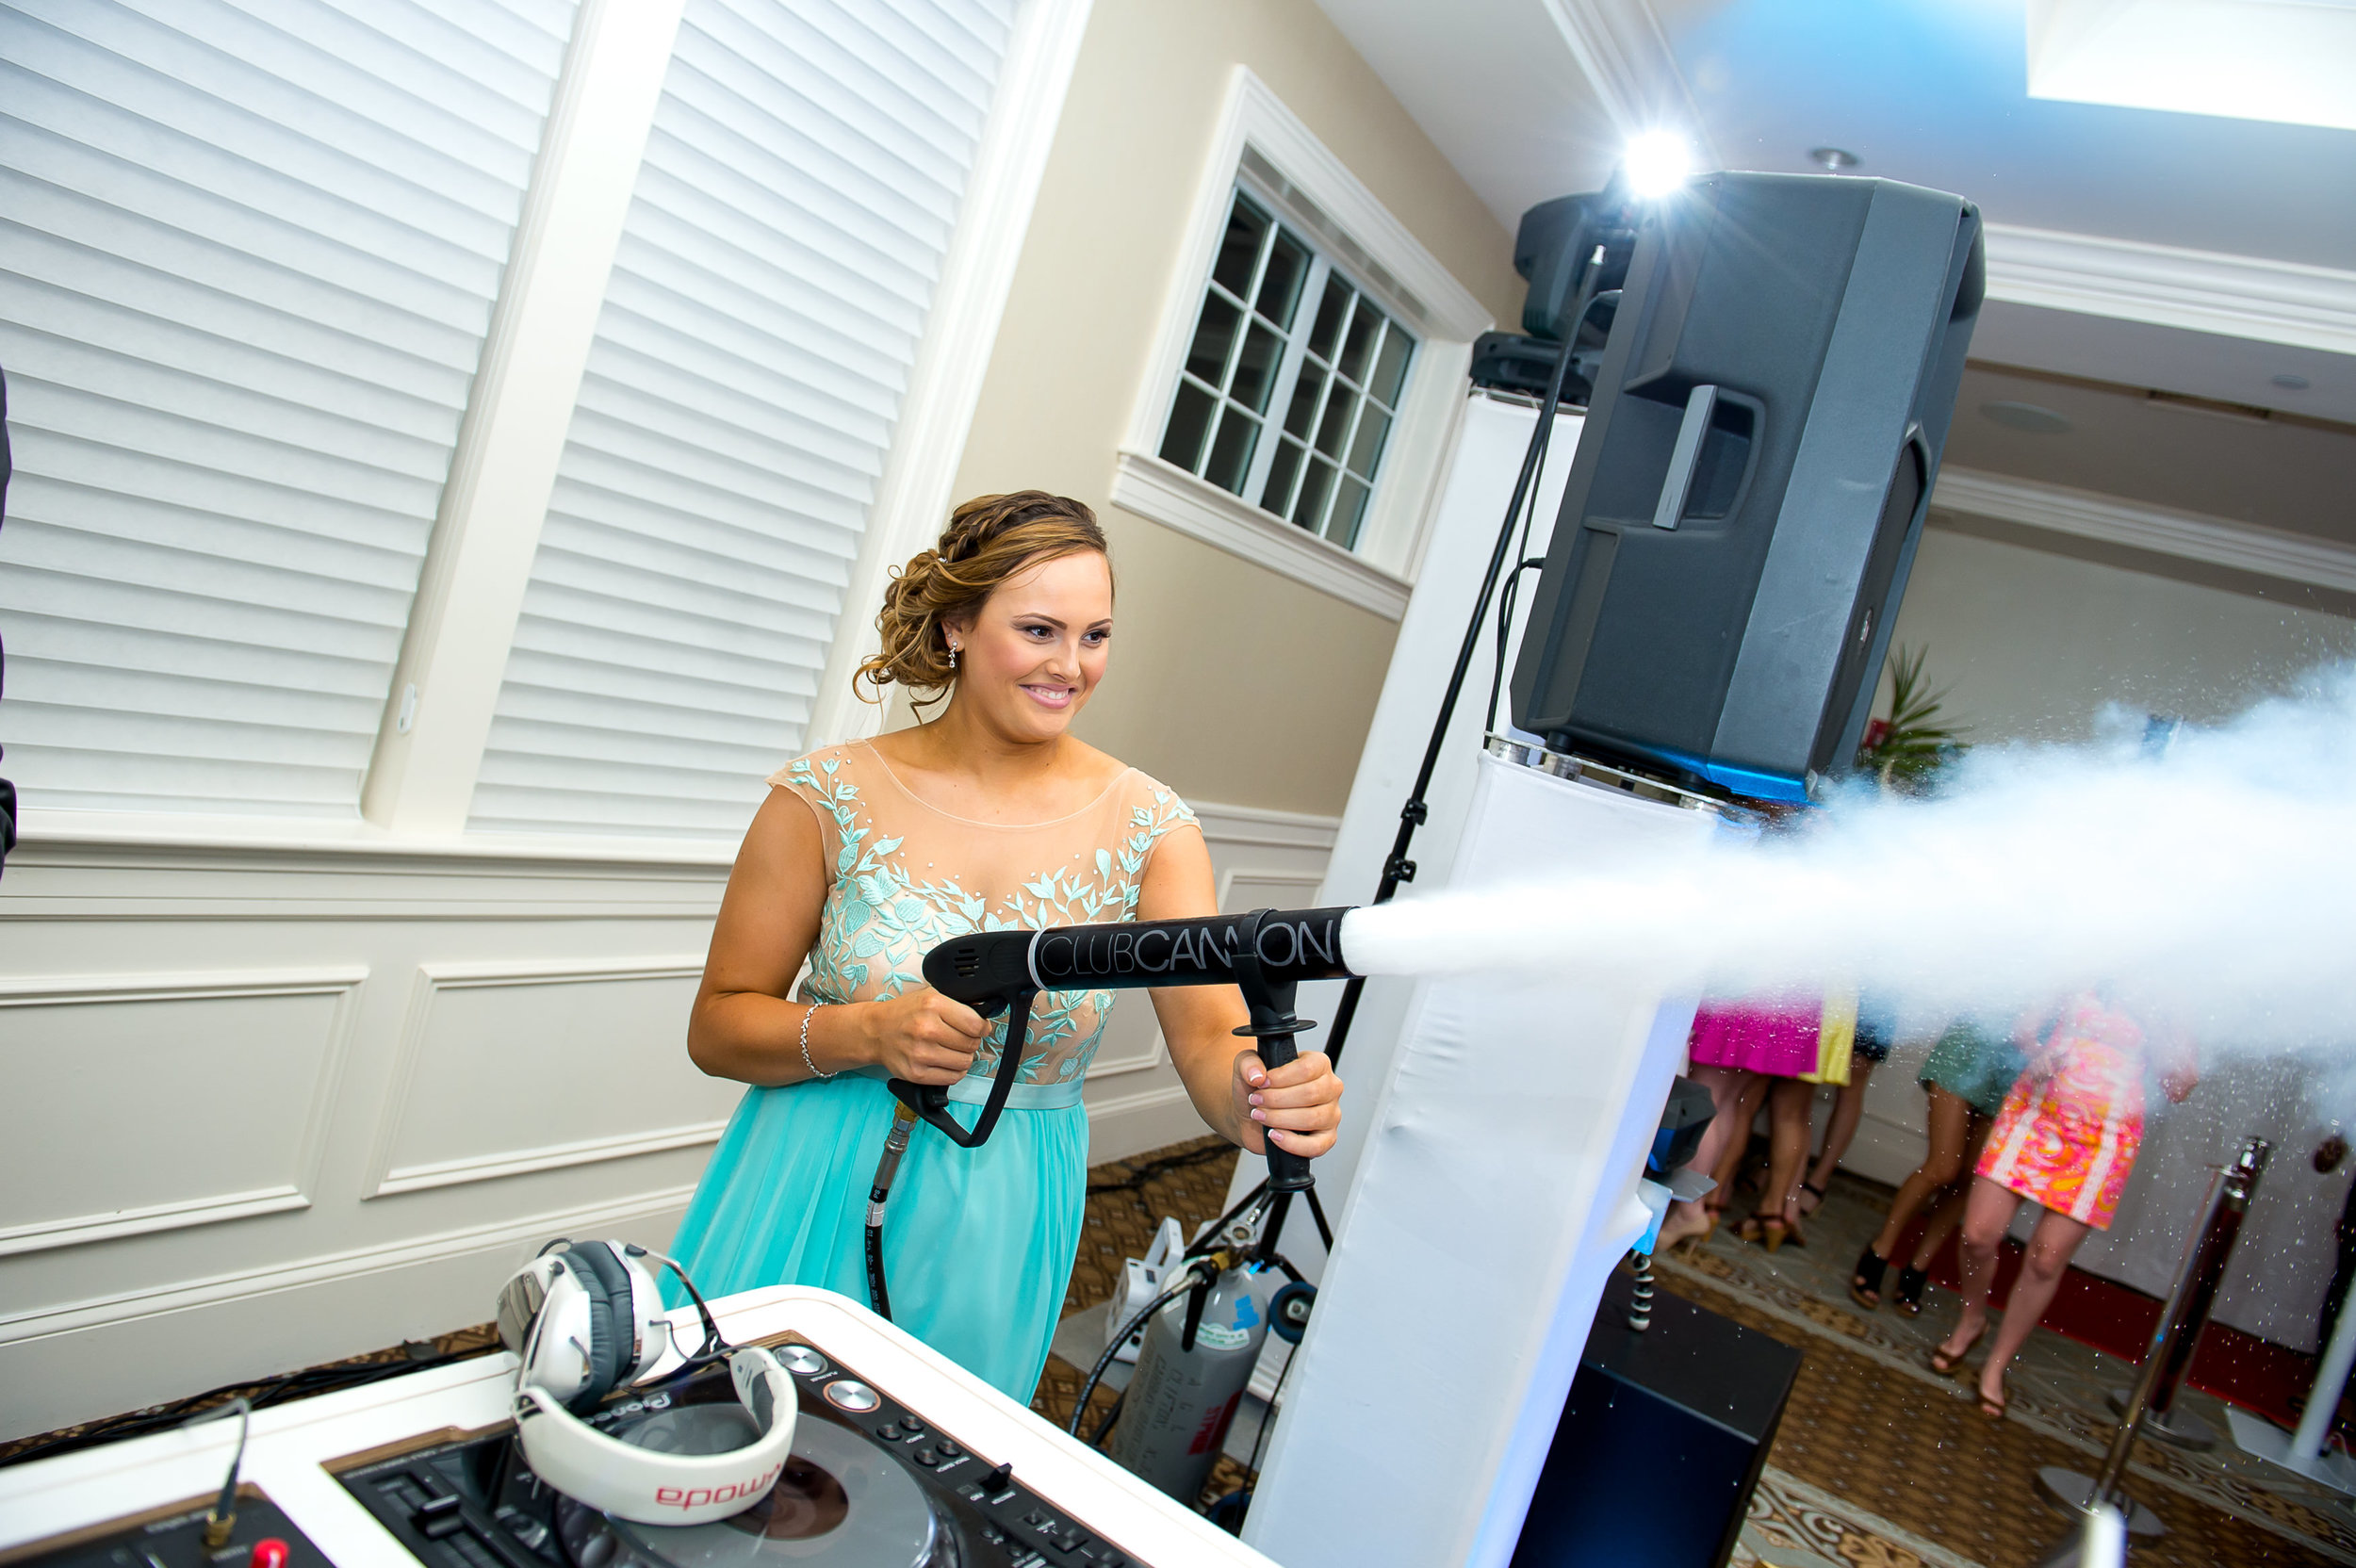 Co2 Cannons for Sweet 16s by Blanc Noir Event Group